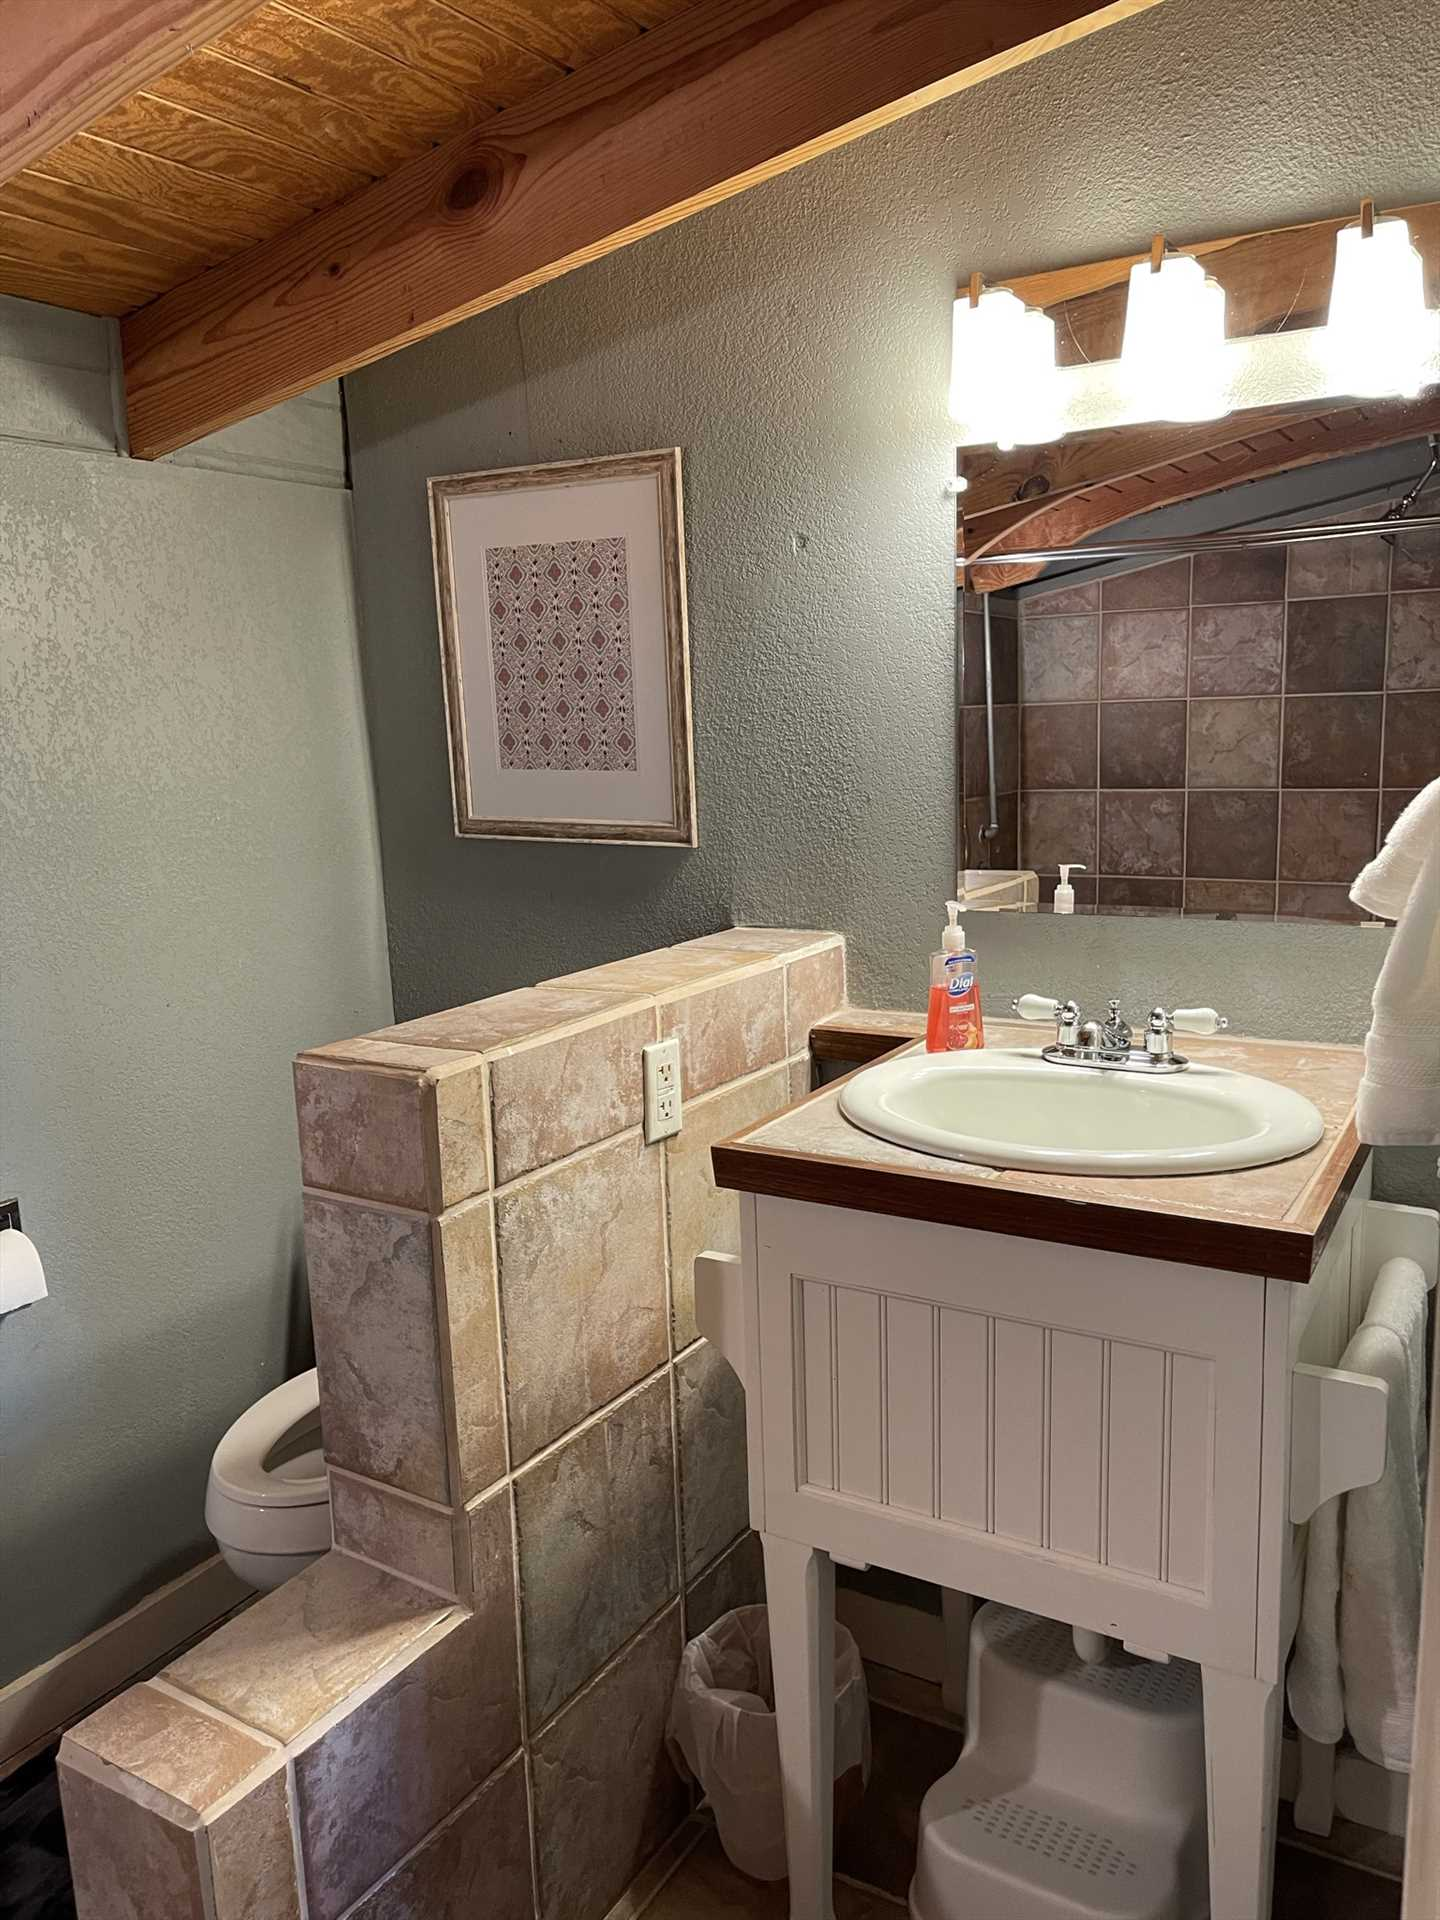 Next to the vanity in the second bathroom, you'll find a convenient half-wall where you can keep your toiletries!